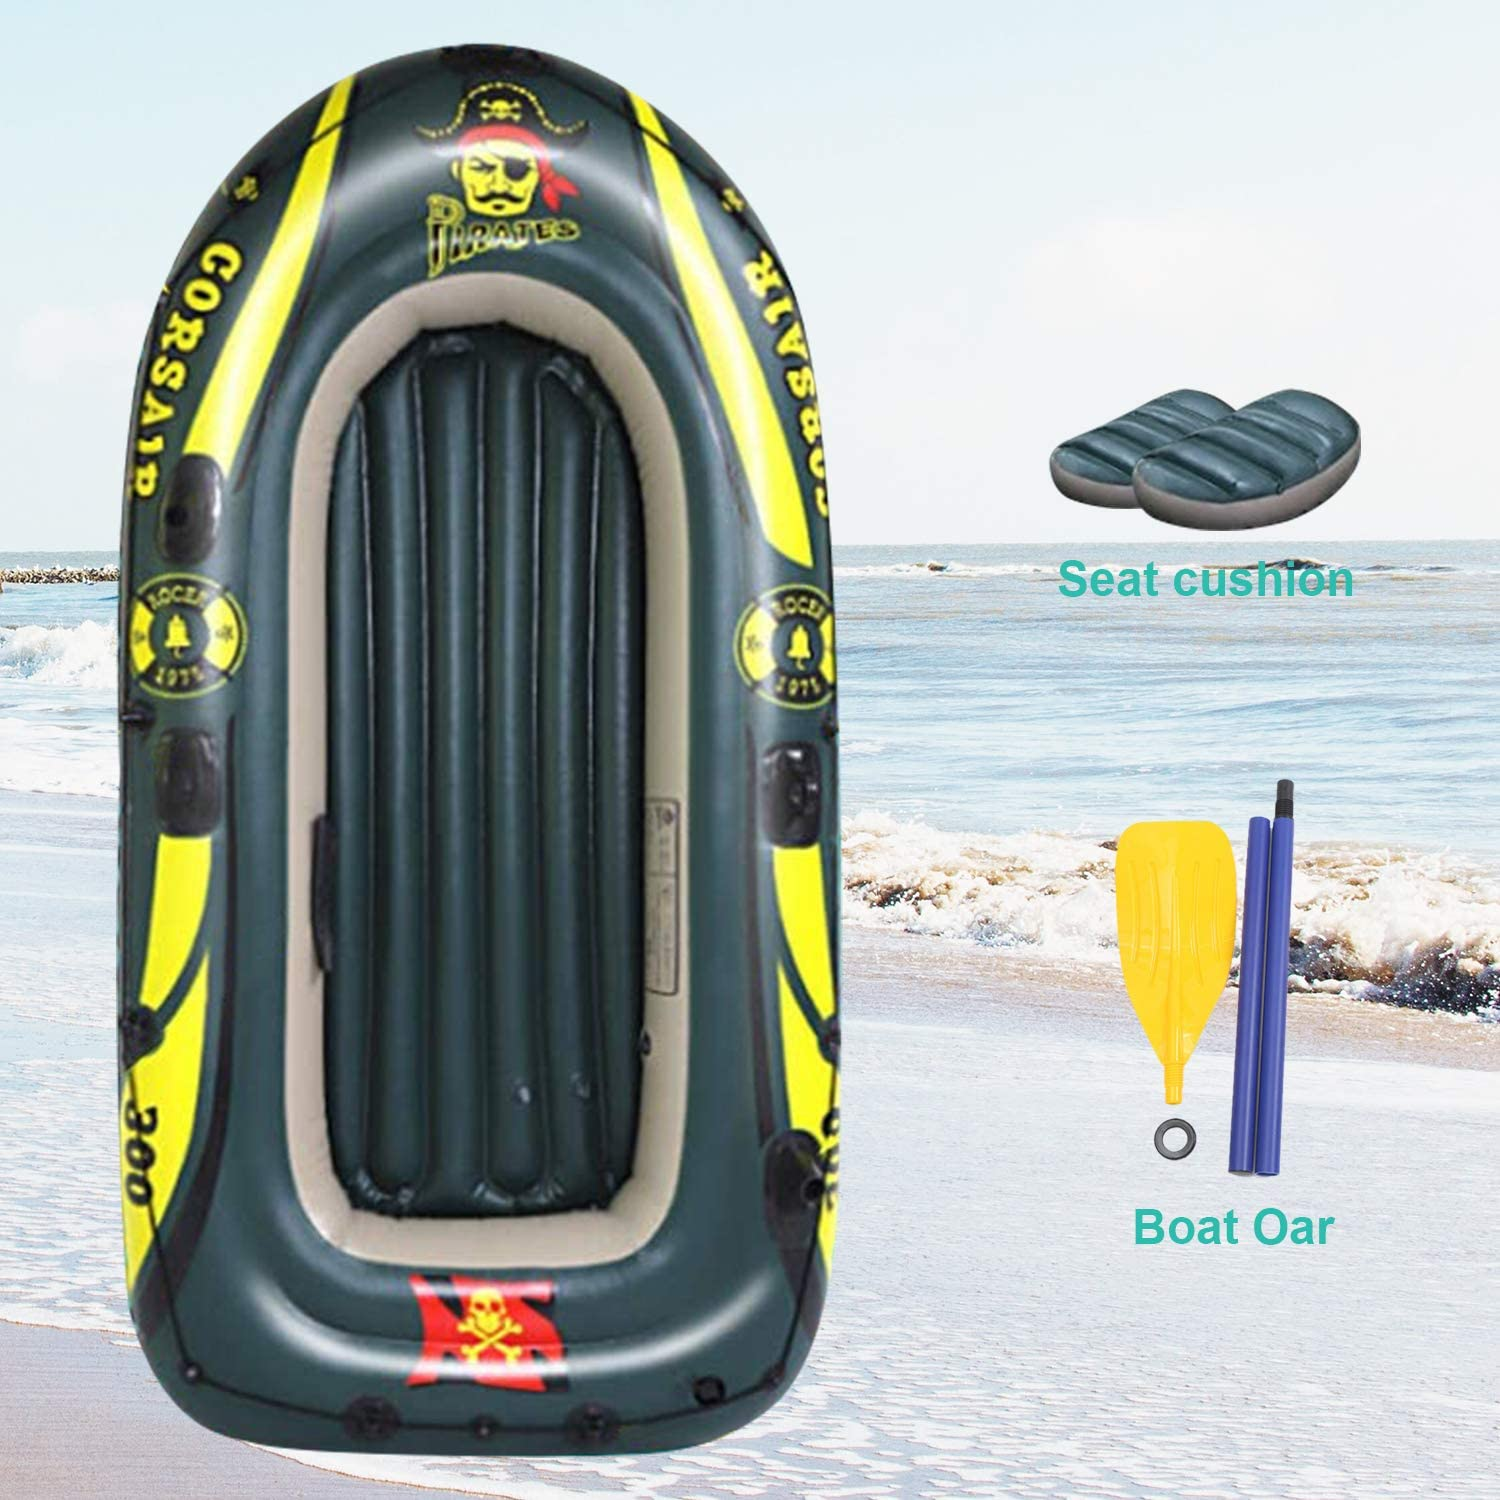 SOARRUCY Inflatable Boat Set for Adults Inflatable Fishing Boat,3 Person Inflatable Kayak with Oars Pump Pool Water Rafts for Lake